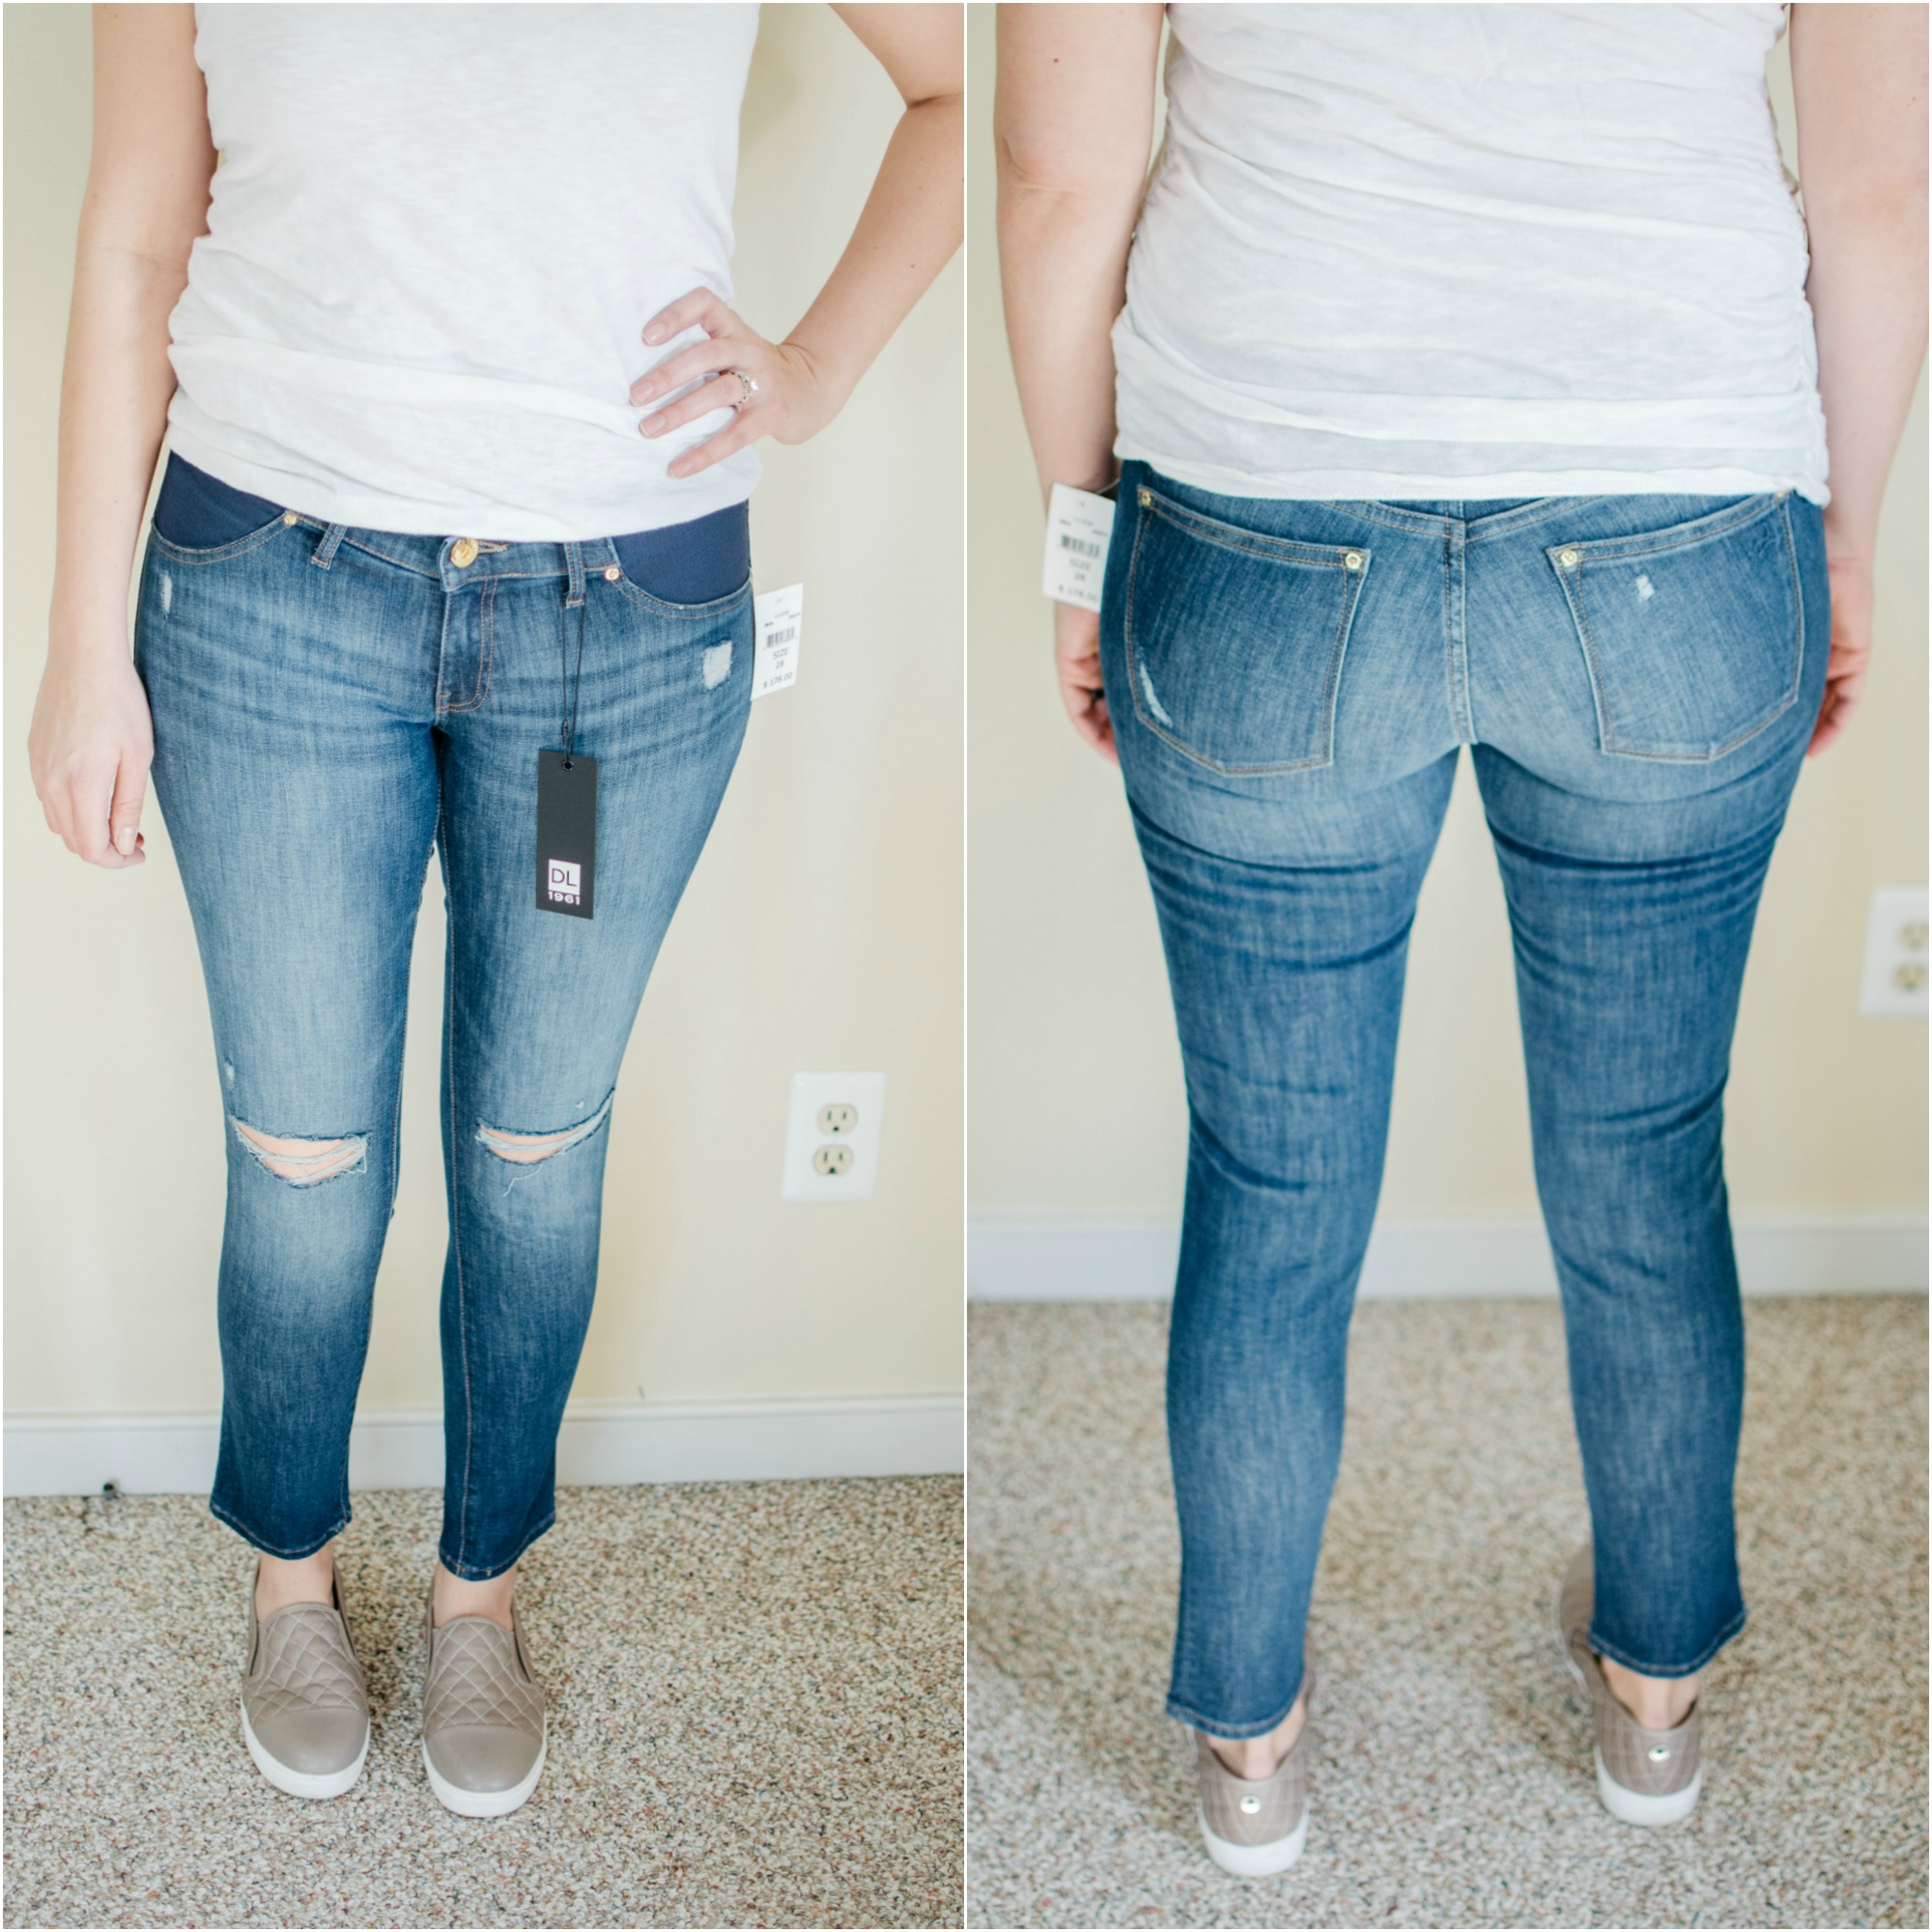 DL 1961 Maternity Jeans review | See reviews of over 15 maternity jeans brands by clicking through to this post! | bylaurenm.com